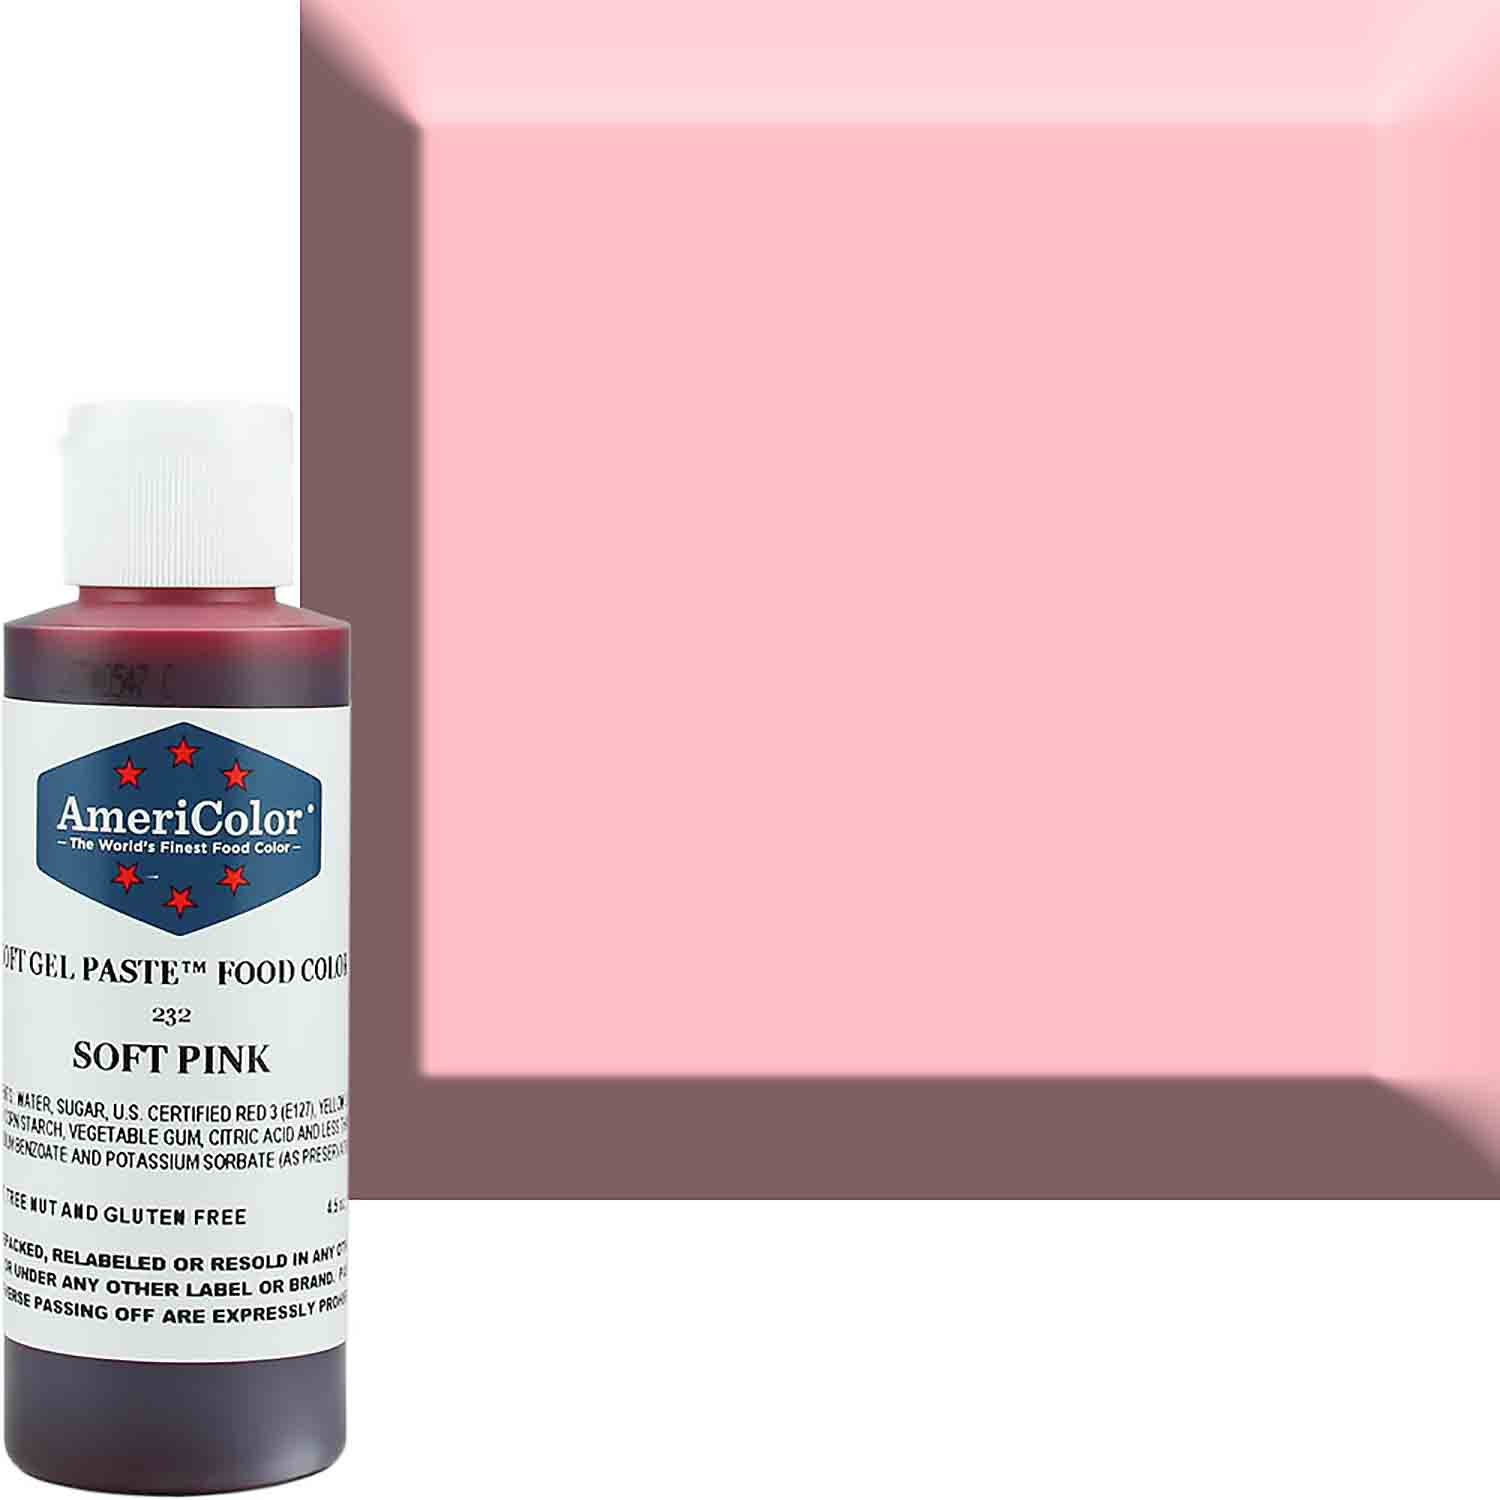 Soft Pink AmeriColor® Soft Gel Paste™ Food Color